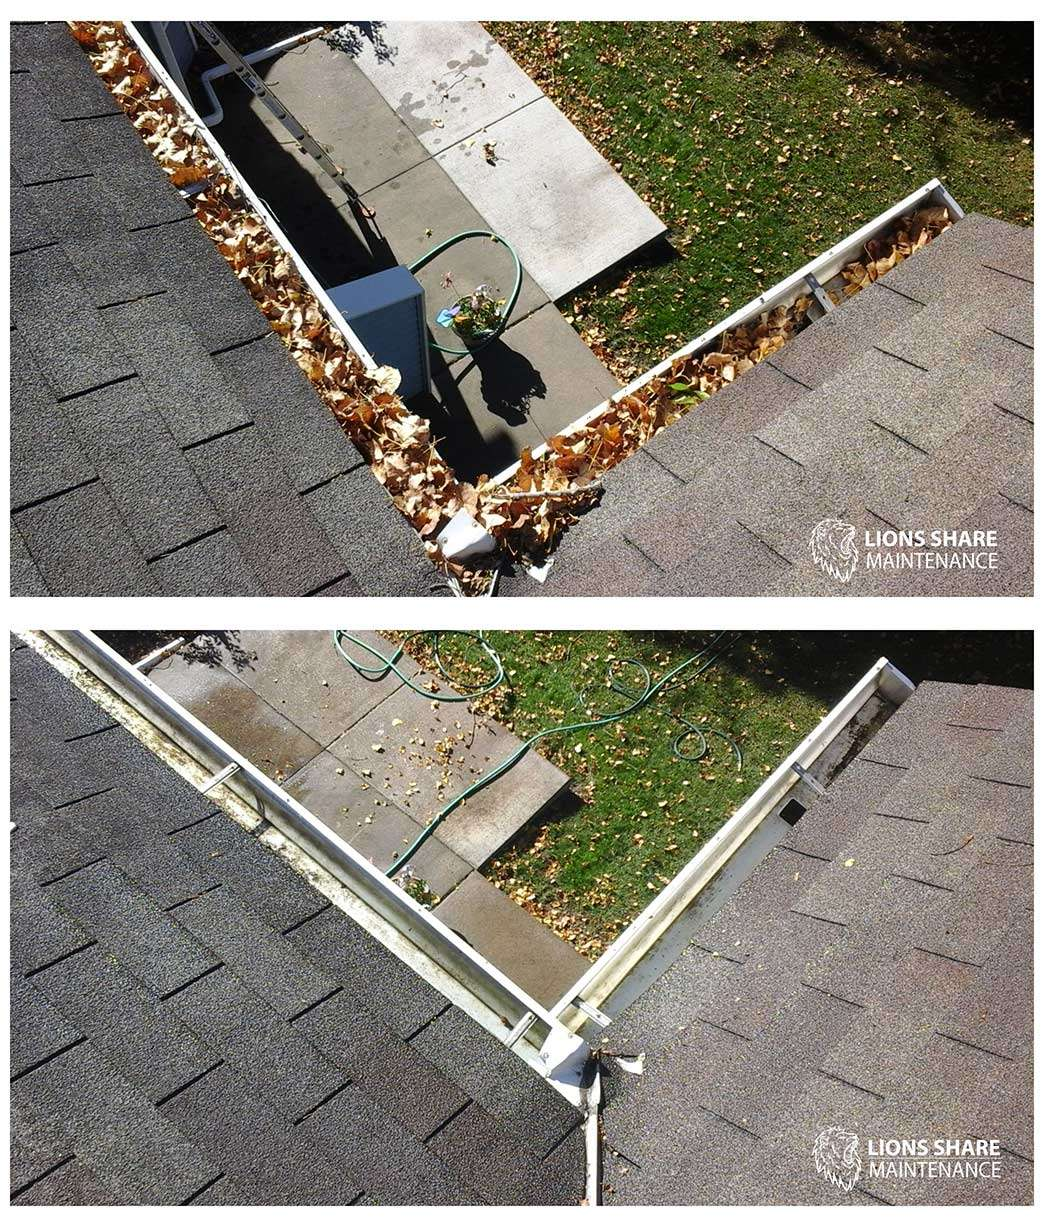 Gutter cleaning services - get rid of debris, leaves, sticks and more - St. Paul and Minneapolis Minnesota